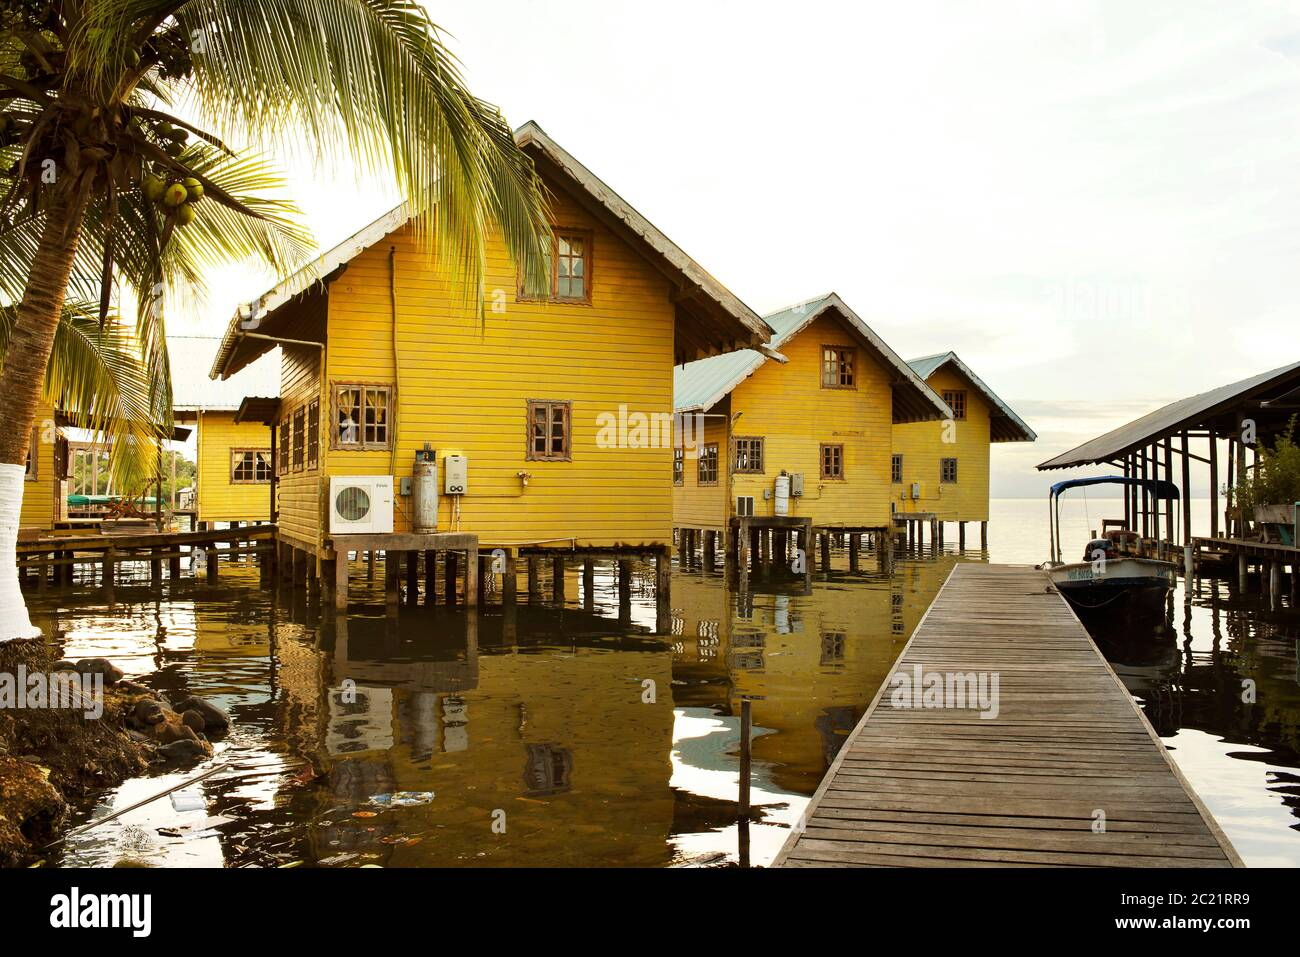 Over the water holiday bungalows. Stilt houses are popular in the Caribbean, Bocas del Toro, Bocas Town, Panama. Oct 2018 Stock Photo